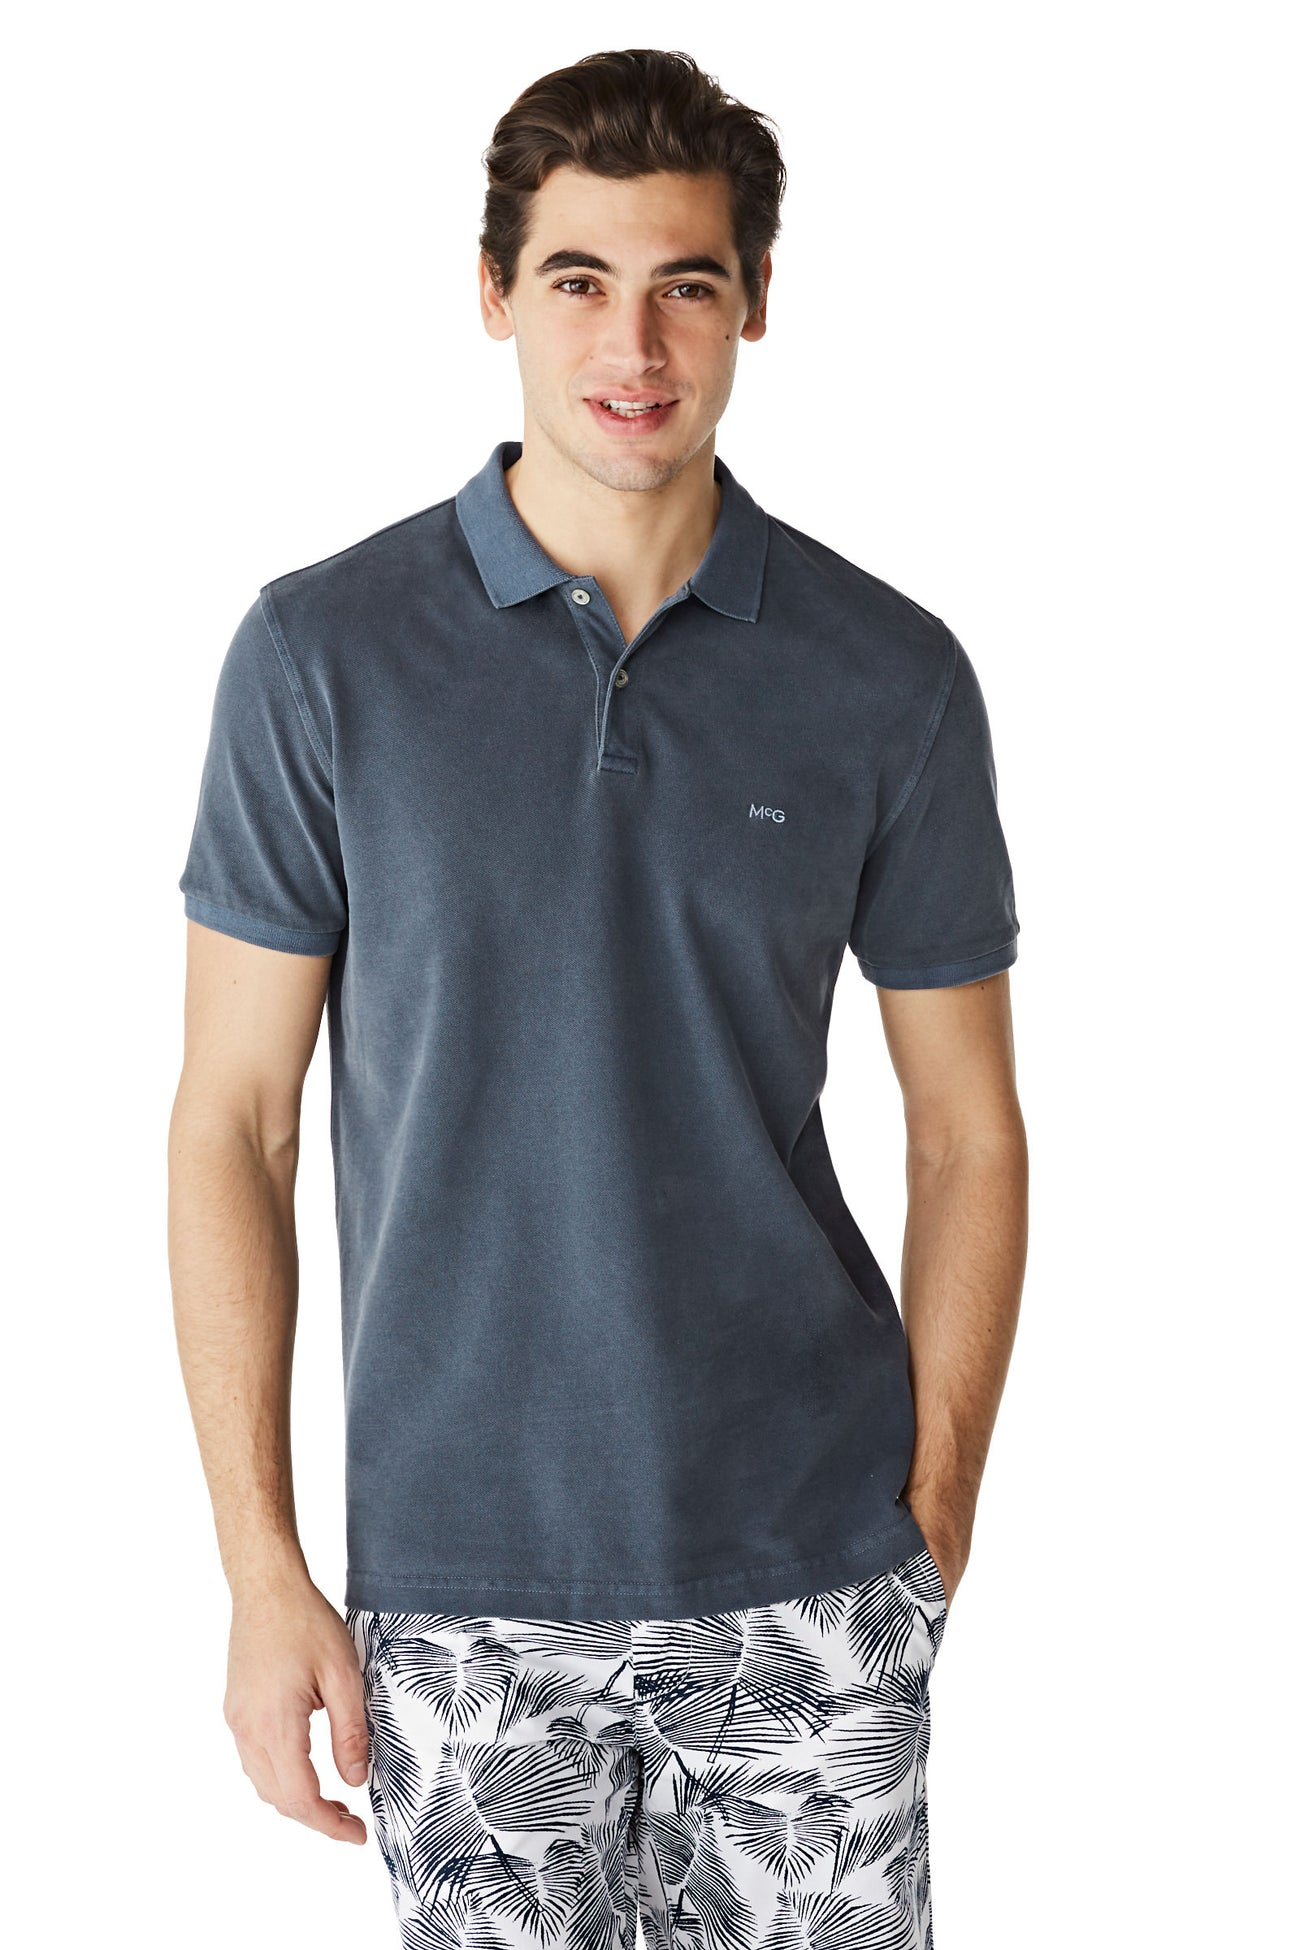 The McG RF GD Pique Polo S/s